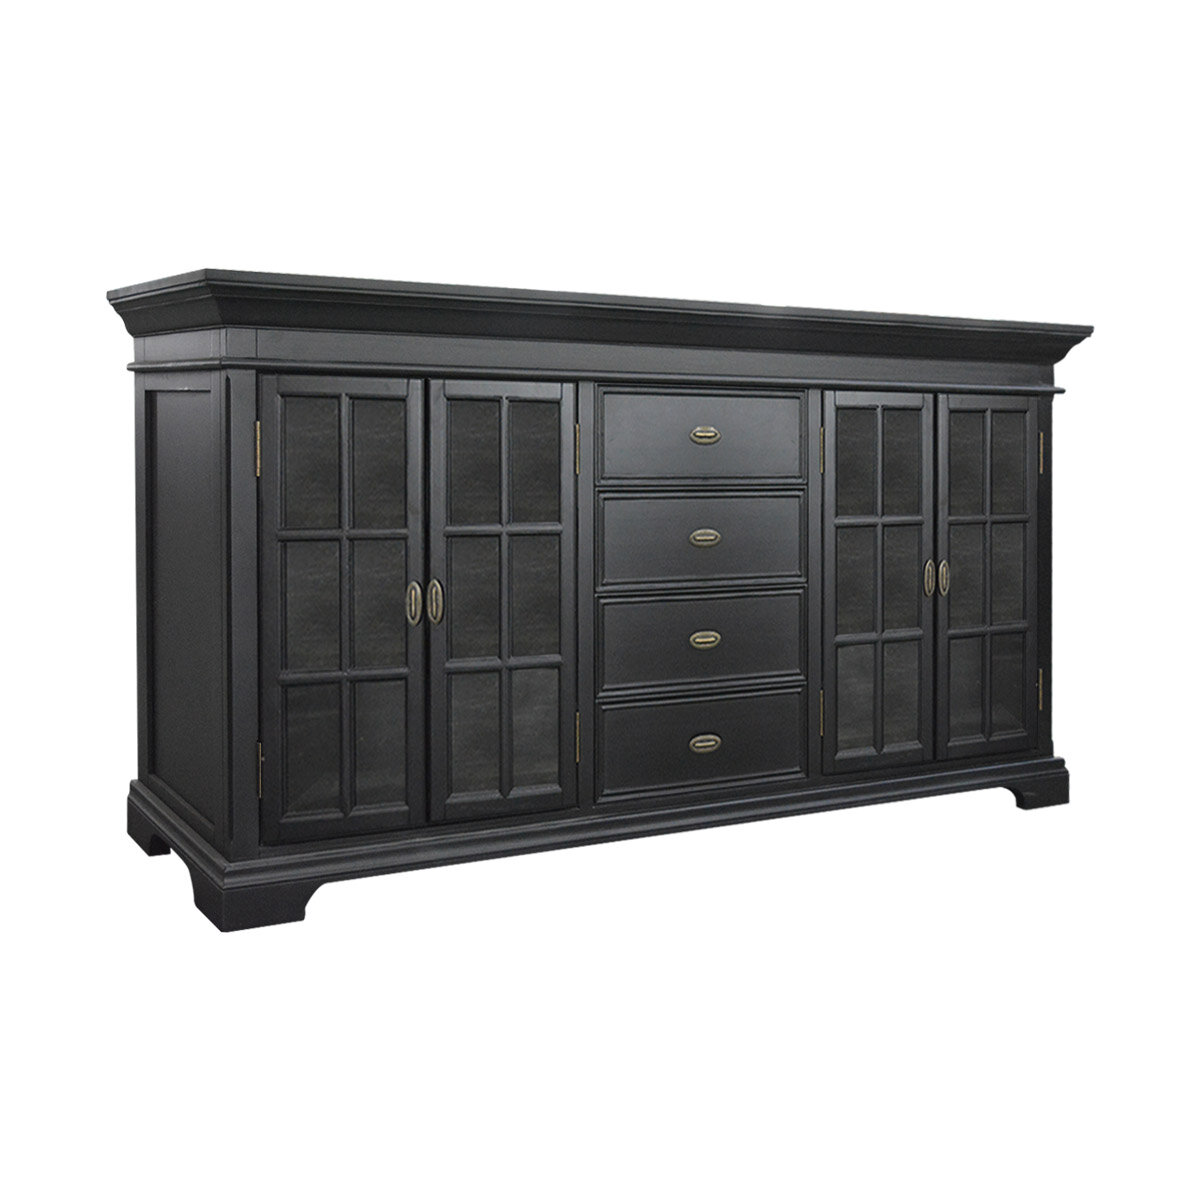 French Kitchen Dresser: French Provincial Furniture Large Kitchen Cabinet